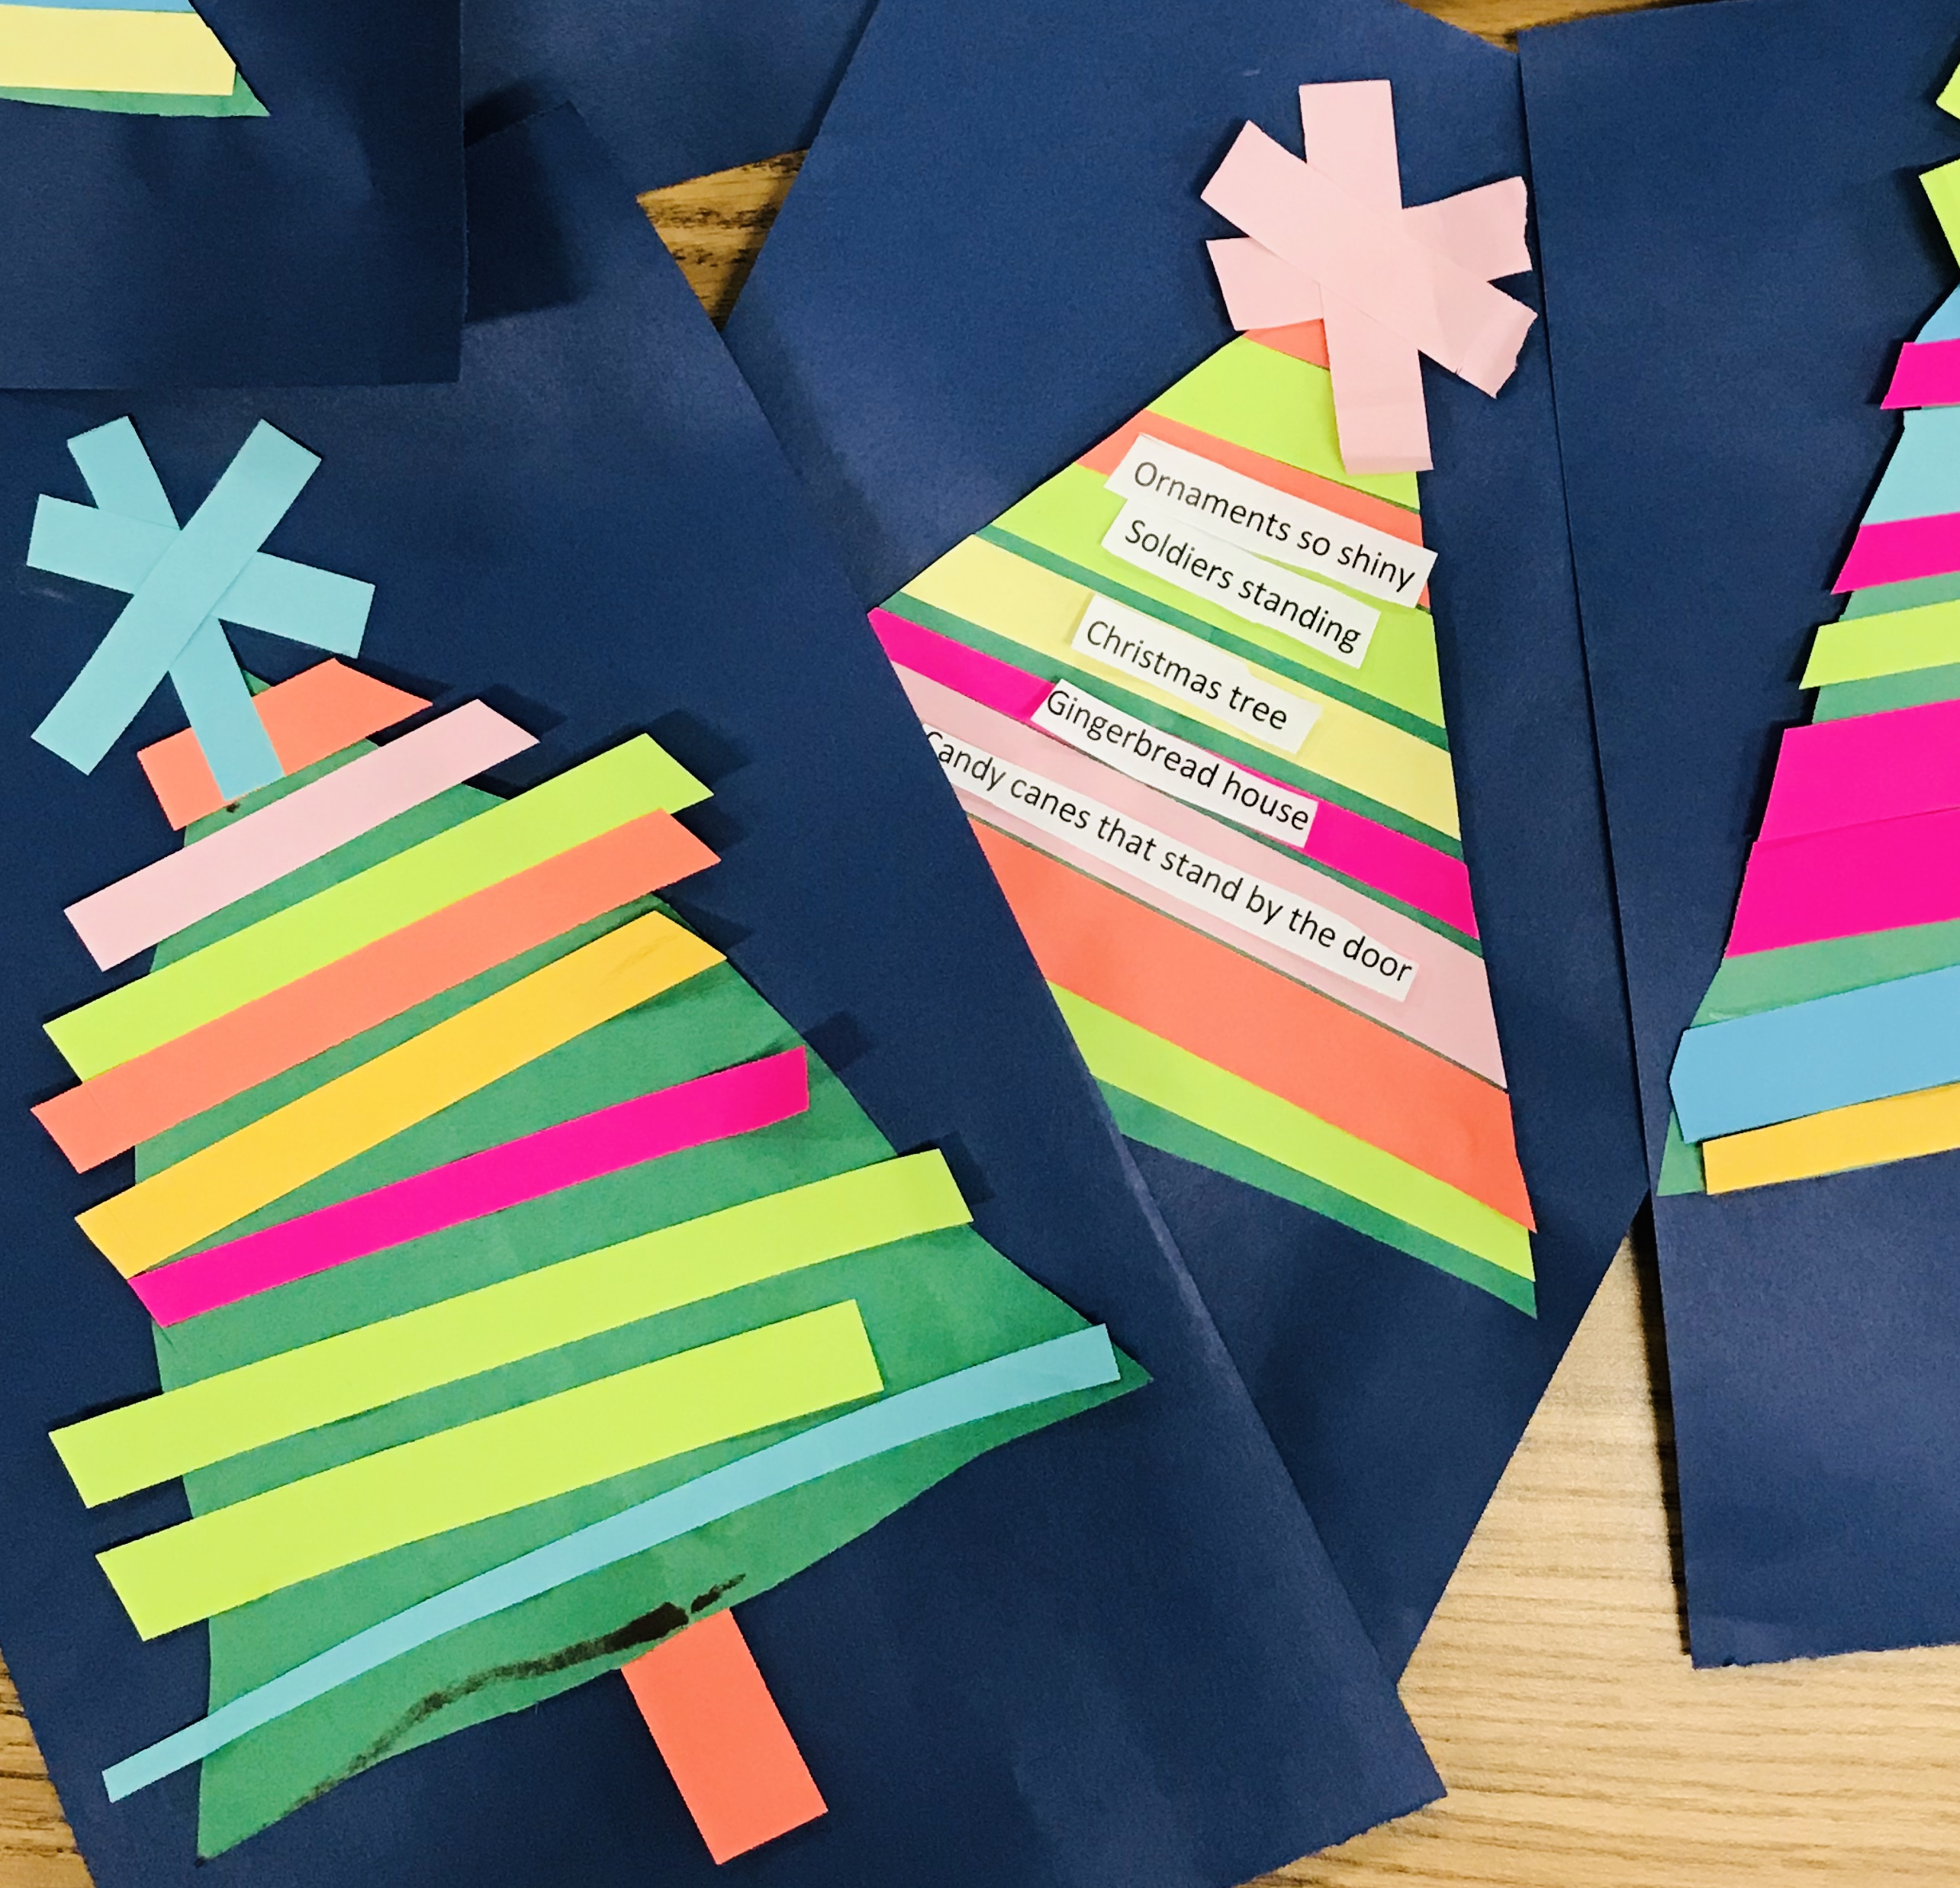 Finished paper Christmas trees